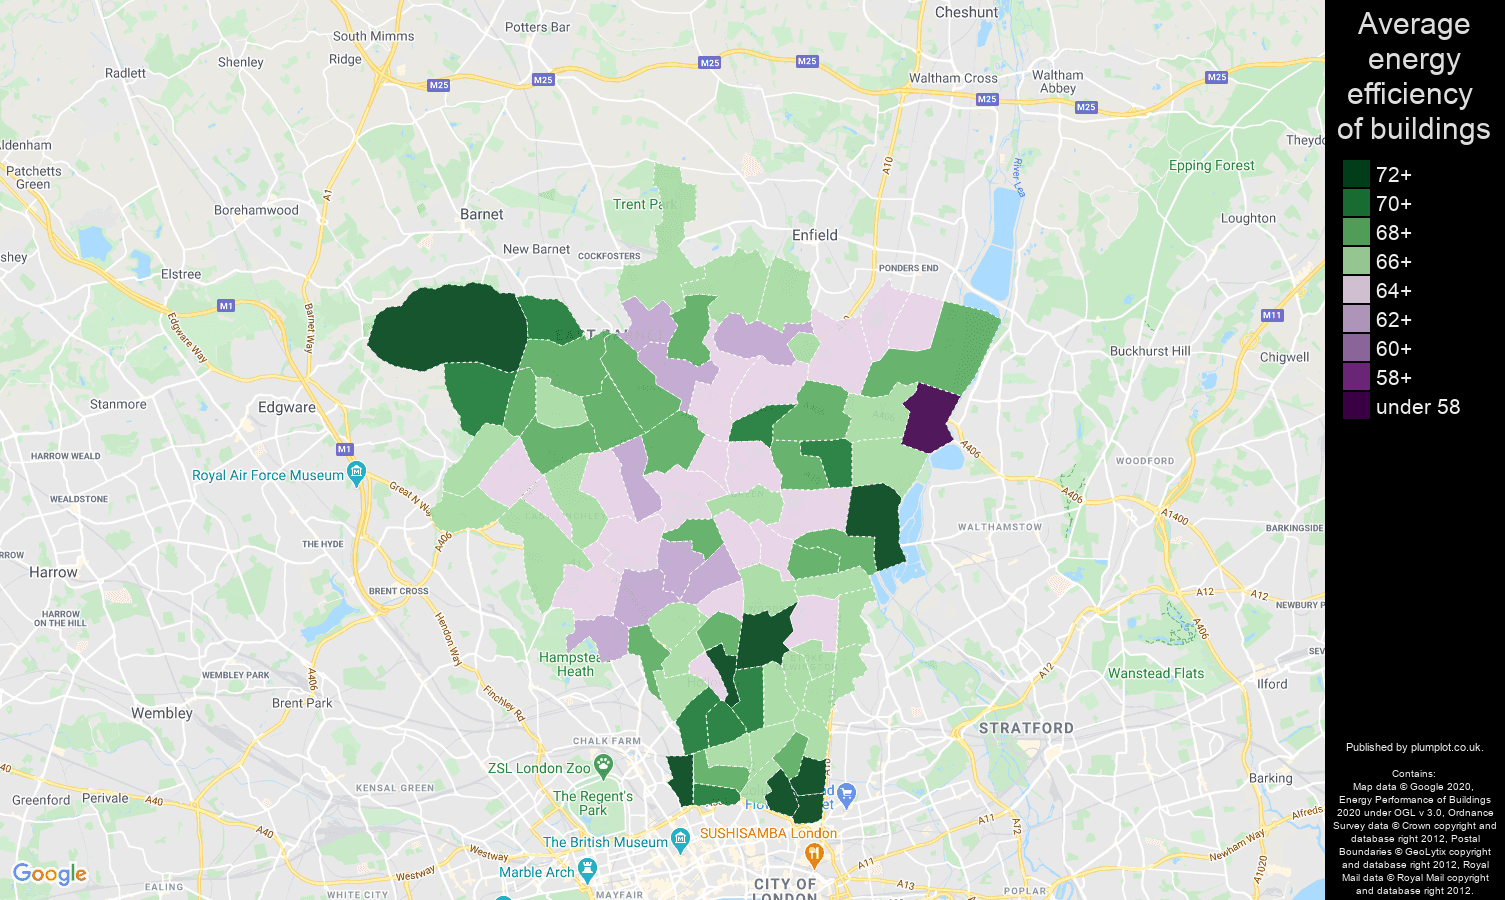 North London map of energy efficiency of flats